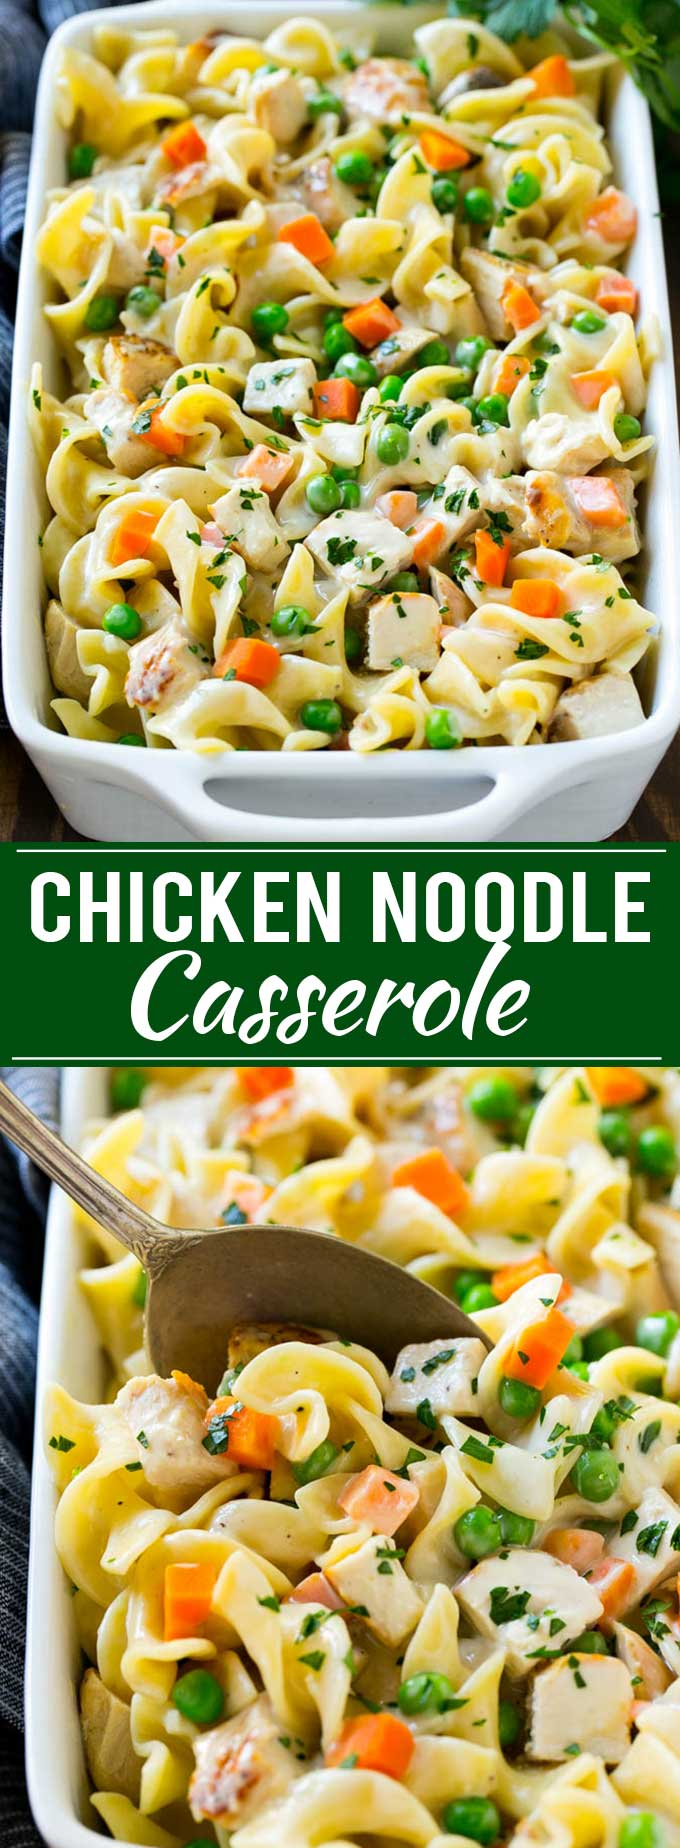 Chicken Noodle Casserole Recipe | Creamy Chicken Casserole | Cream of Chicken Soup Casserole | Noodle Casserole #casserole #chicken #noodles #dinner #pasta #dinneratthezoo